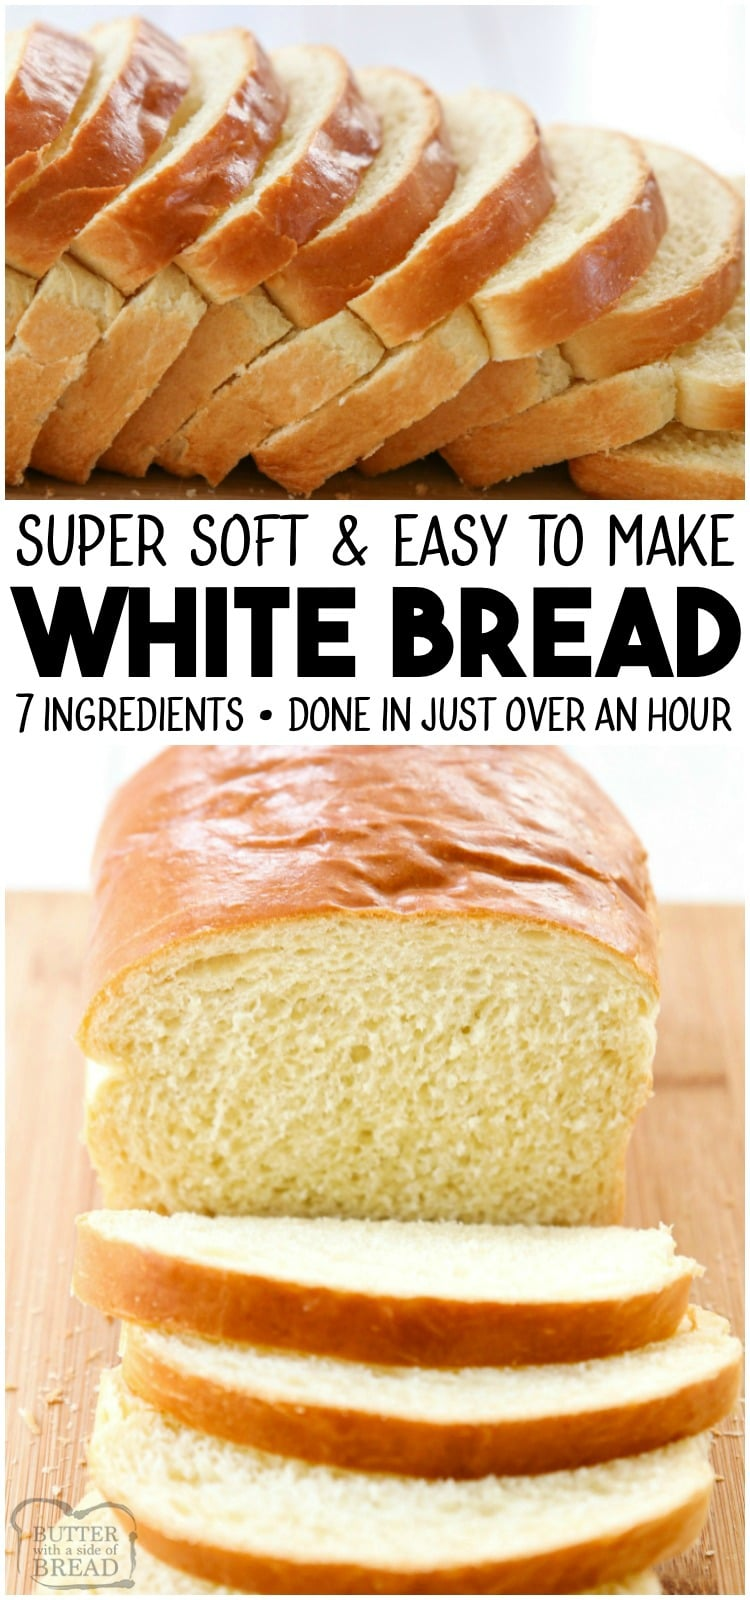 White Bread recipe made with basic ingredients & detailed instructions showing how to make bread! Done in just over an hour this recipe is one of the best soft white sandwich bread recipes. #bread #sandwich #whitebread #homemade #yeast #baking #recipe from BUTTER WITH A SIDE OF BREAD